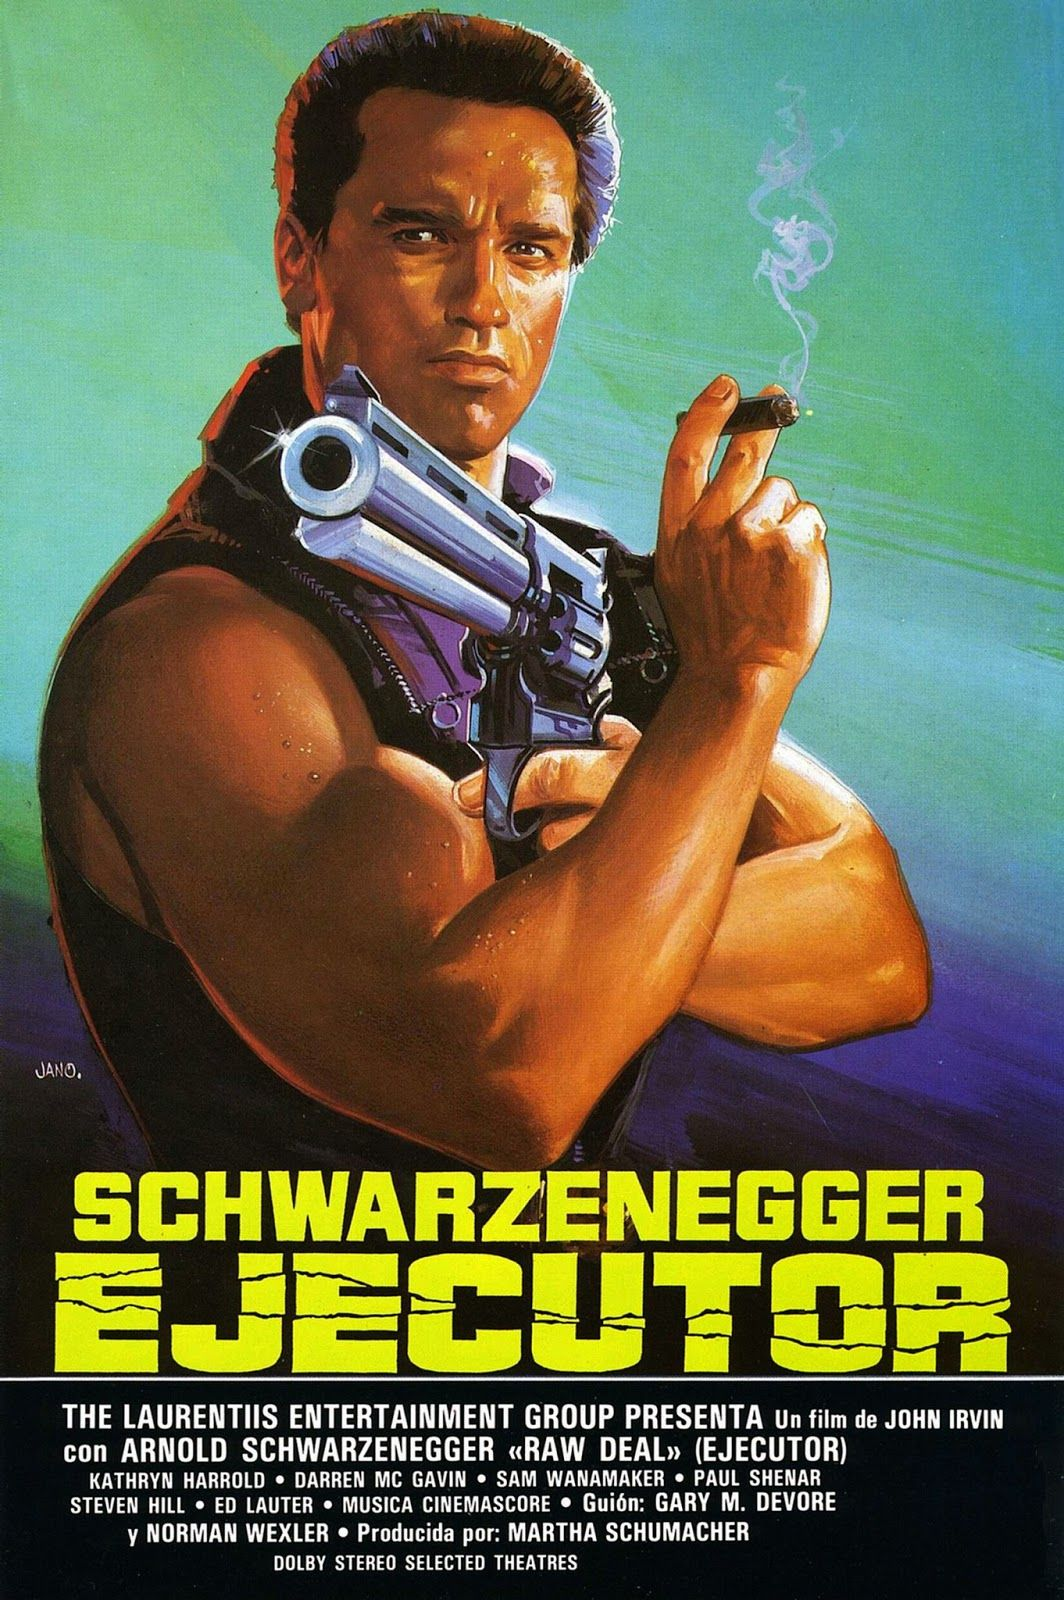 RAW DEAL 1986 Arnold Schwarzenegger.